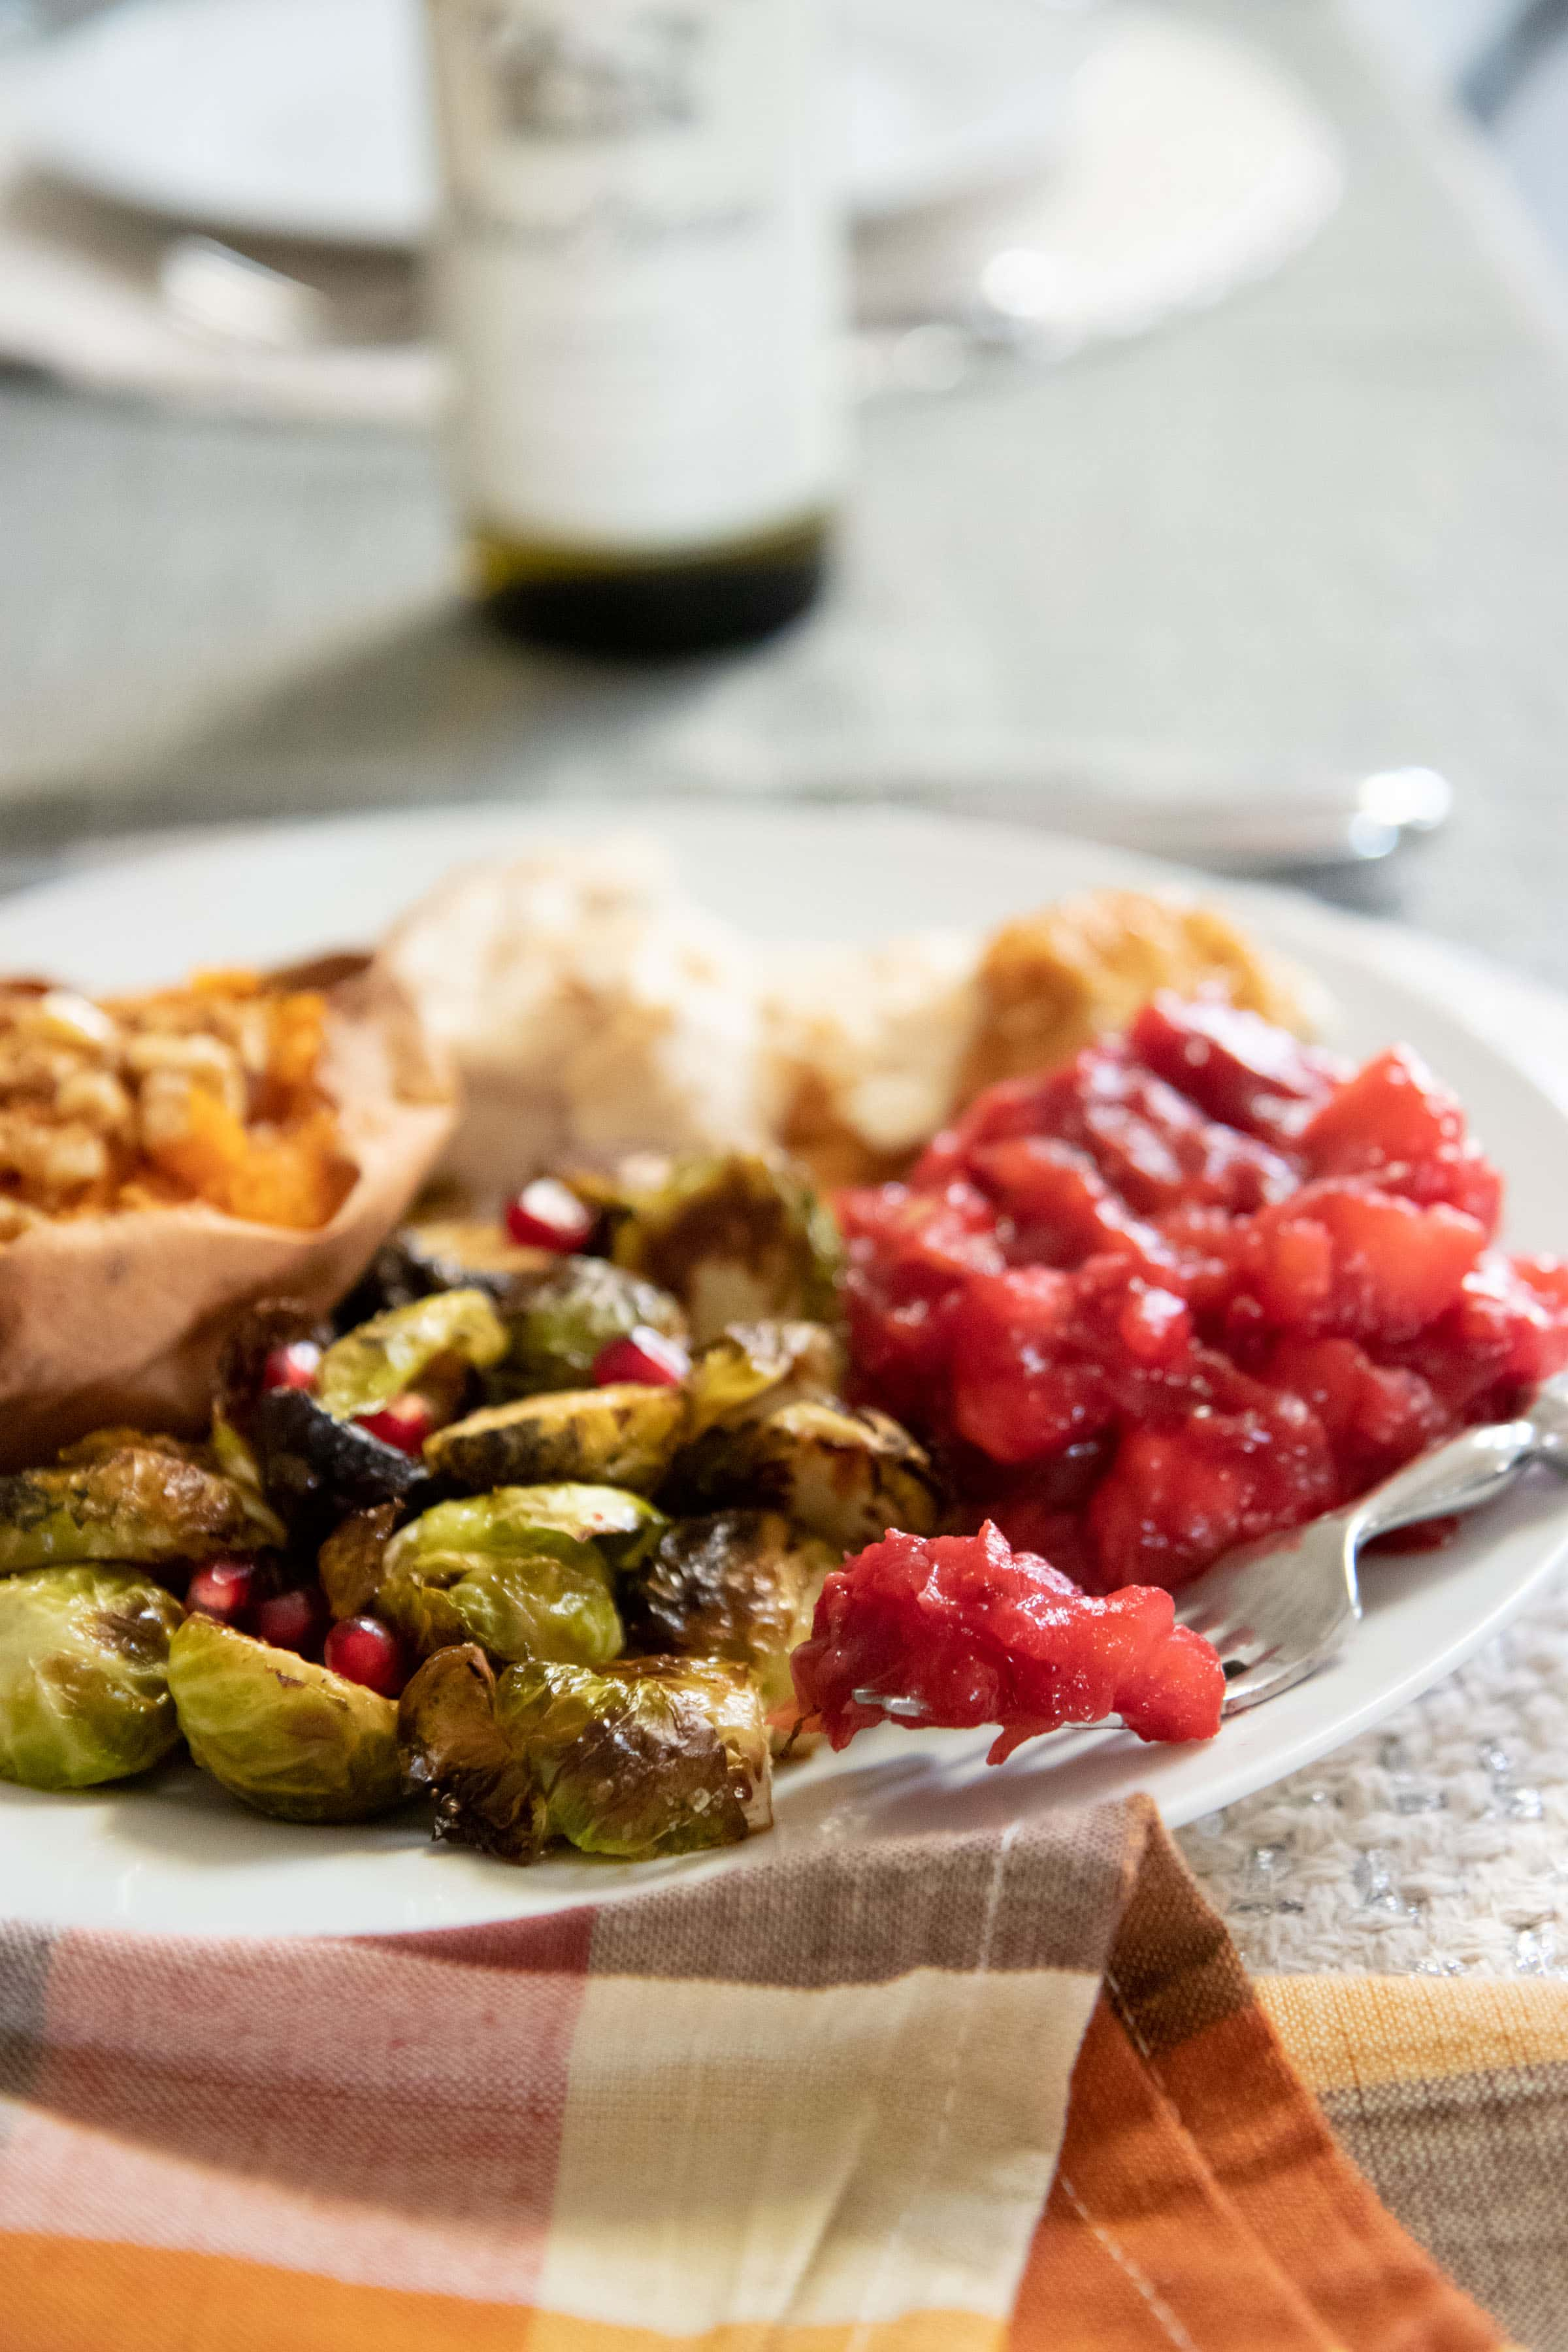 Chunky Cranberry Applesauce and Brussels sprouts on a white plate as part of a Thanksgiving dinner